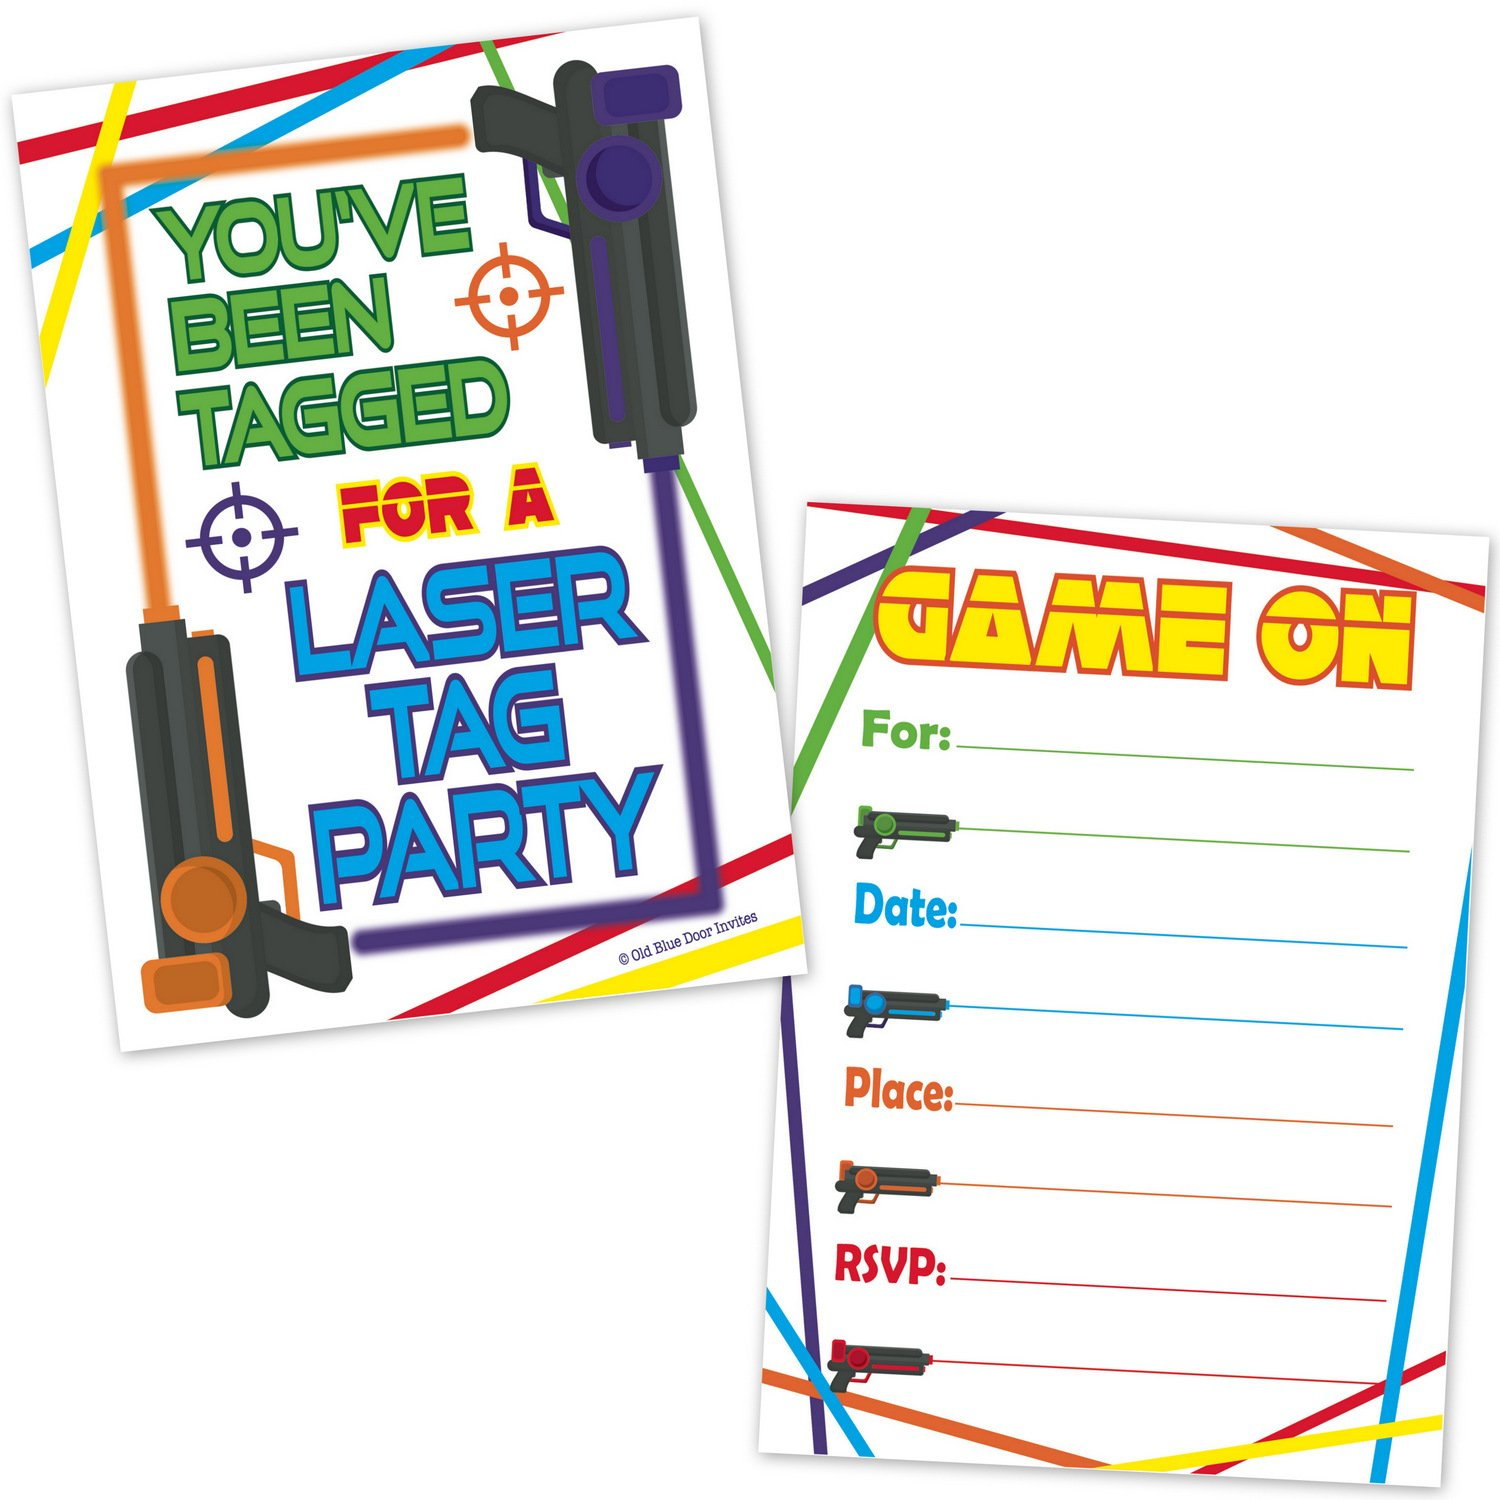 Laser Tag Birthday Party Invitations (20 Count with Envelopes) - Kids Party Invites for Boys and Girls - Laser Tag Party Supplies